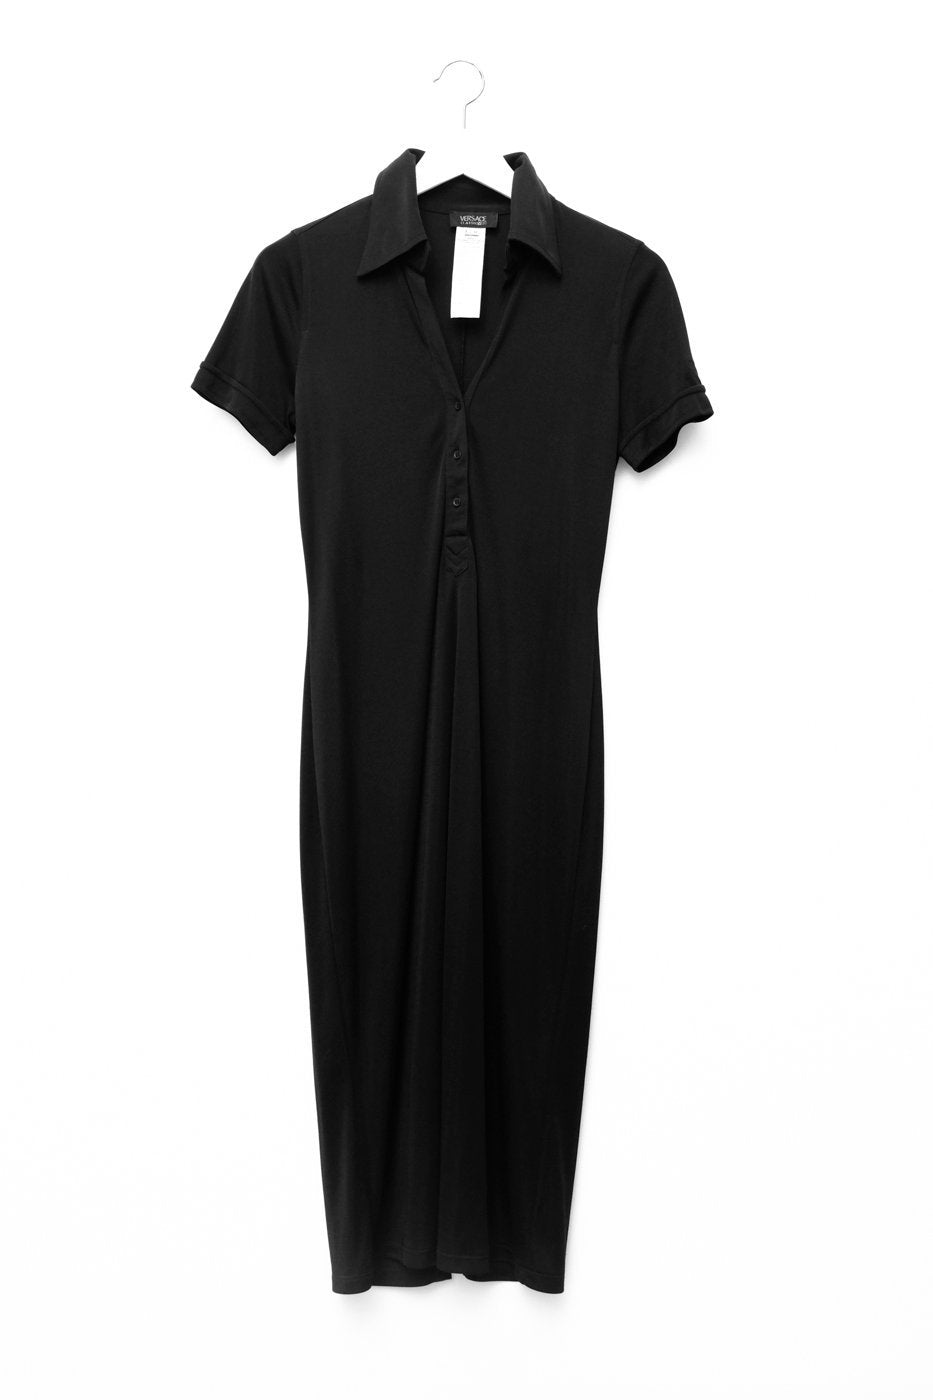 0487_VERSACE BLACK VINTAGE DRESS